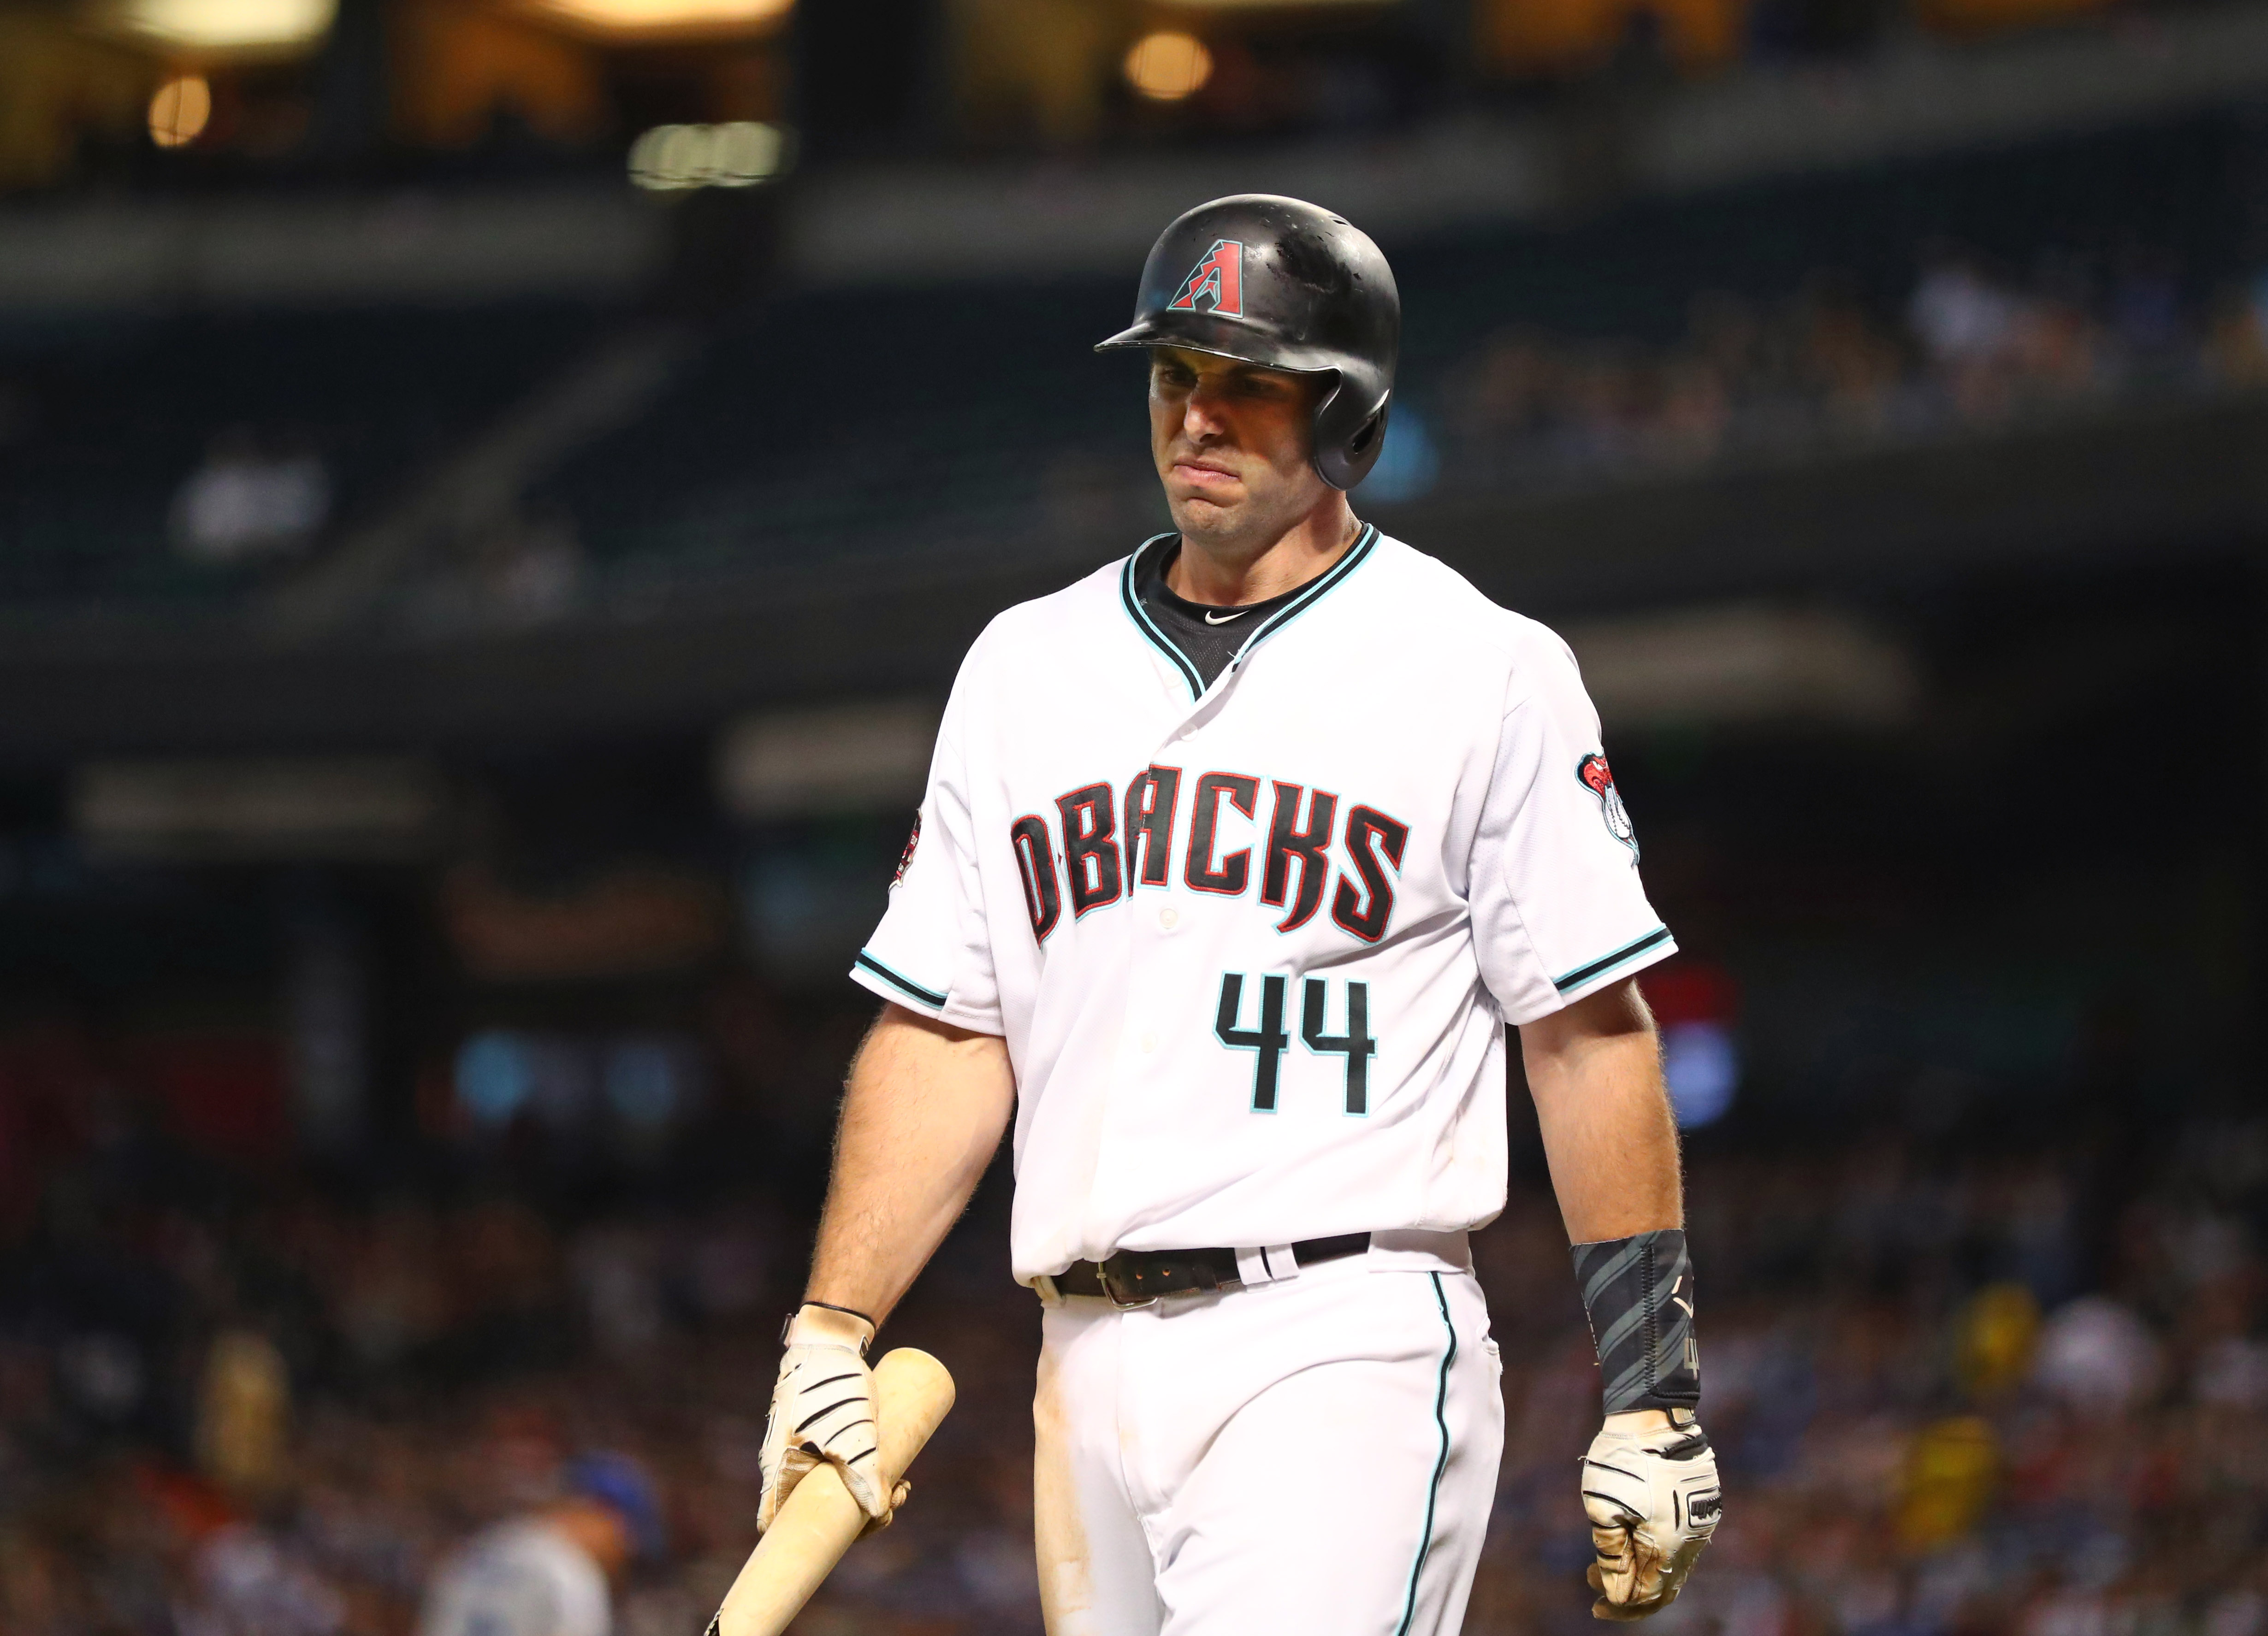 Looking at possible trade destinations for Paul Goldschmidt